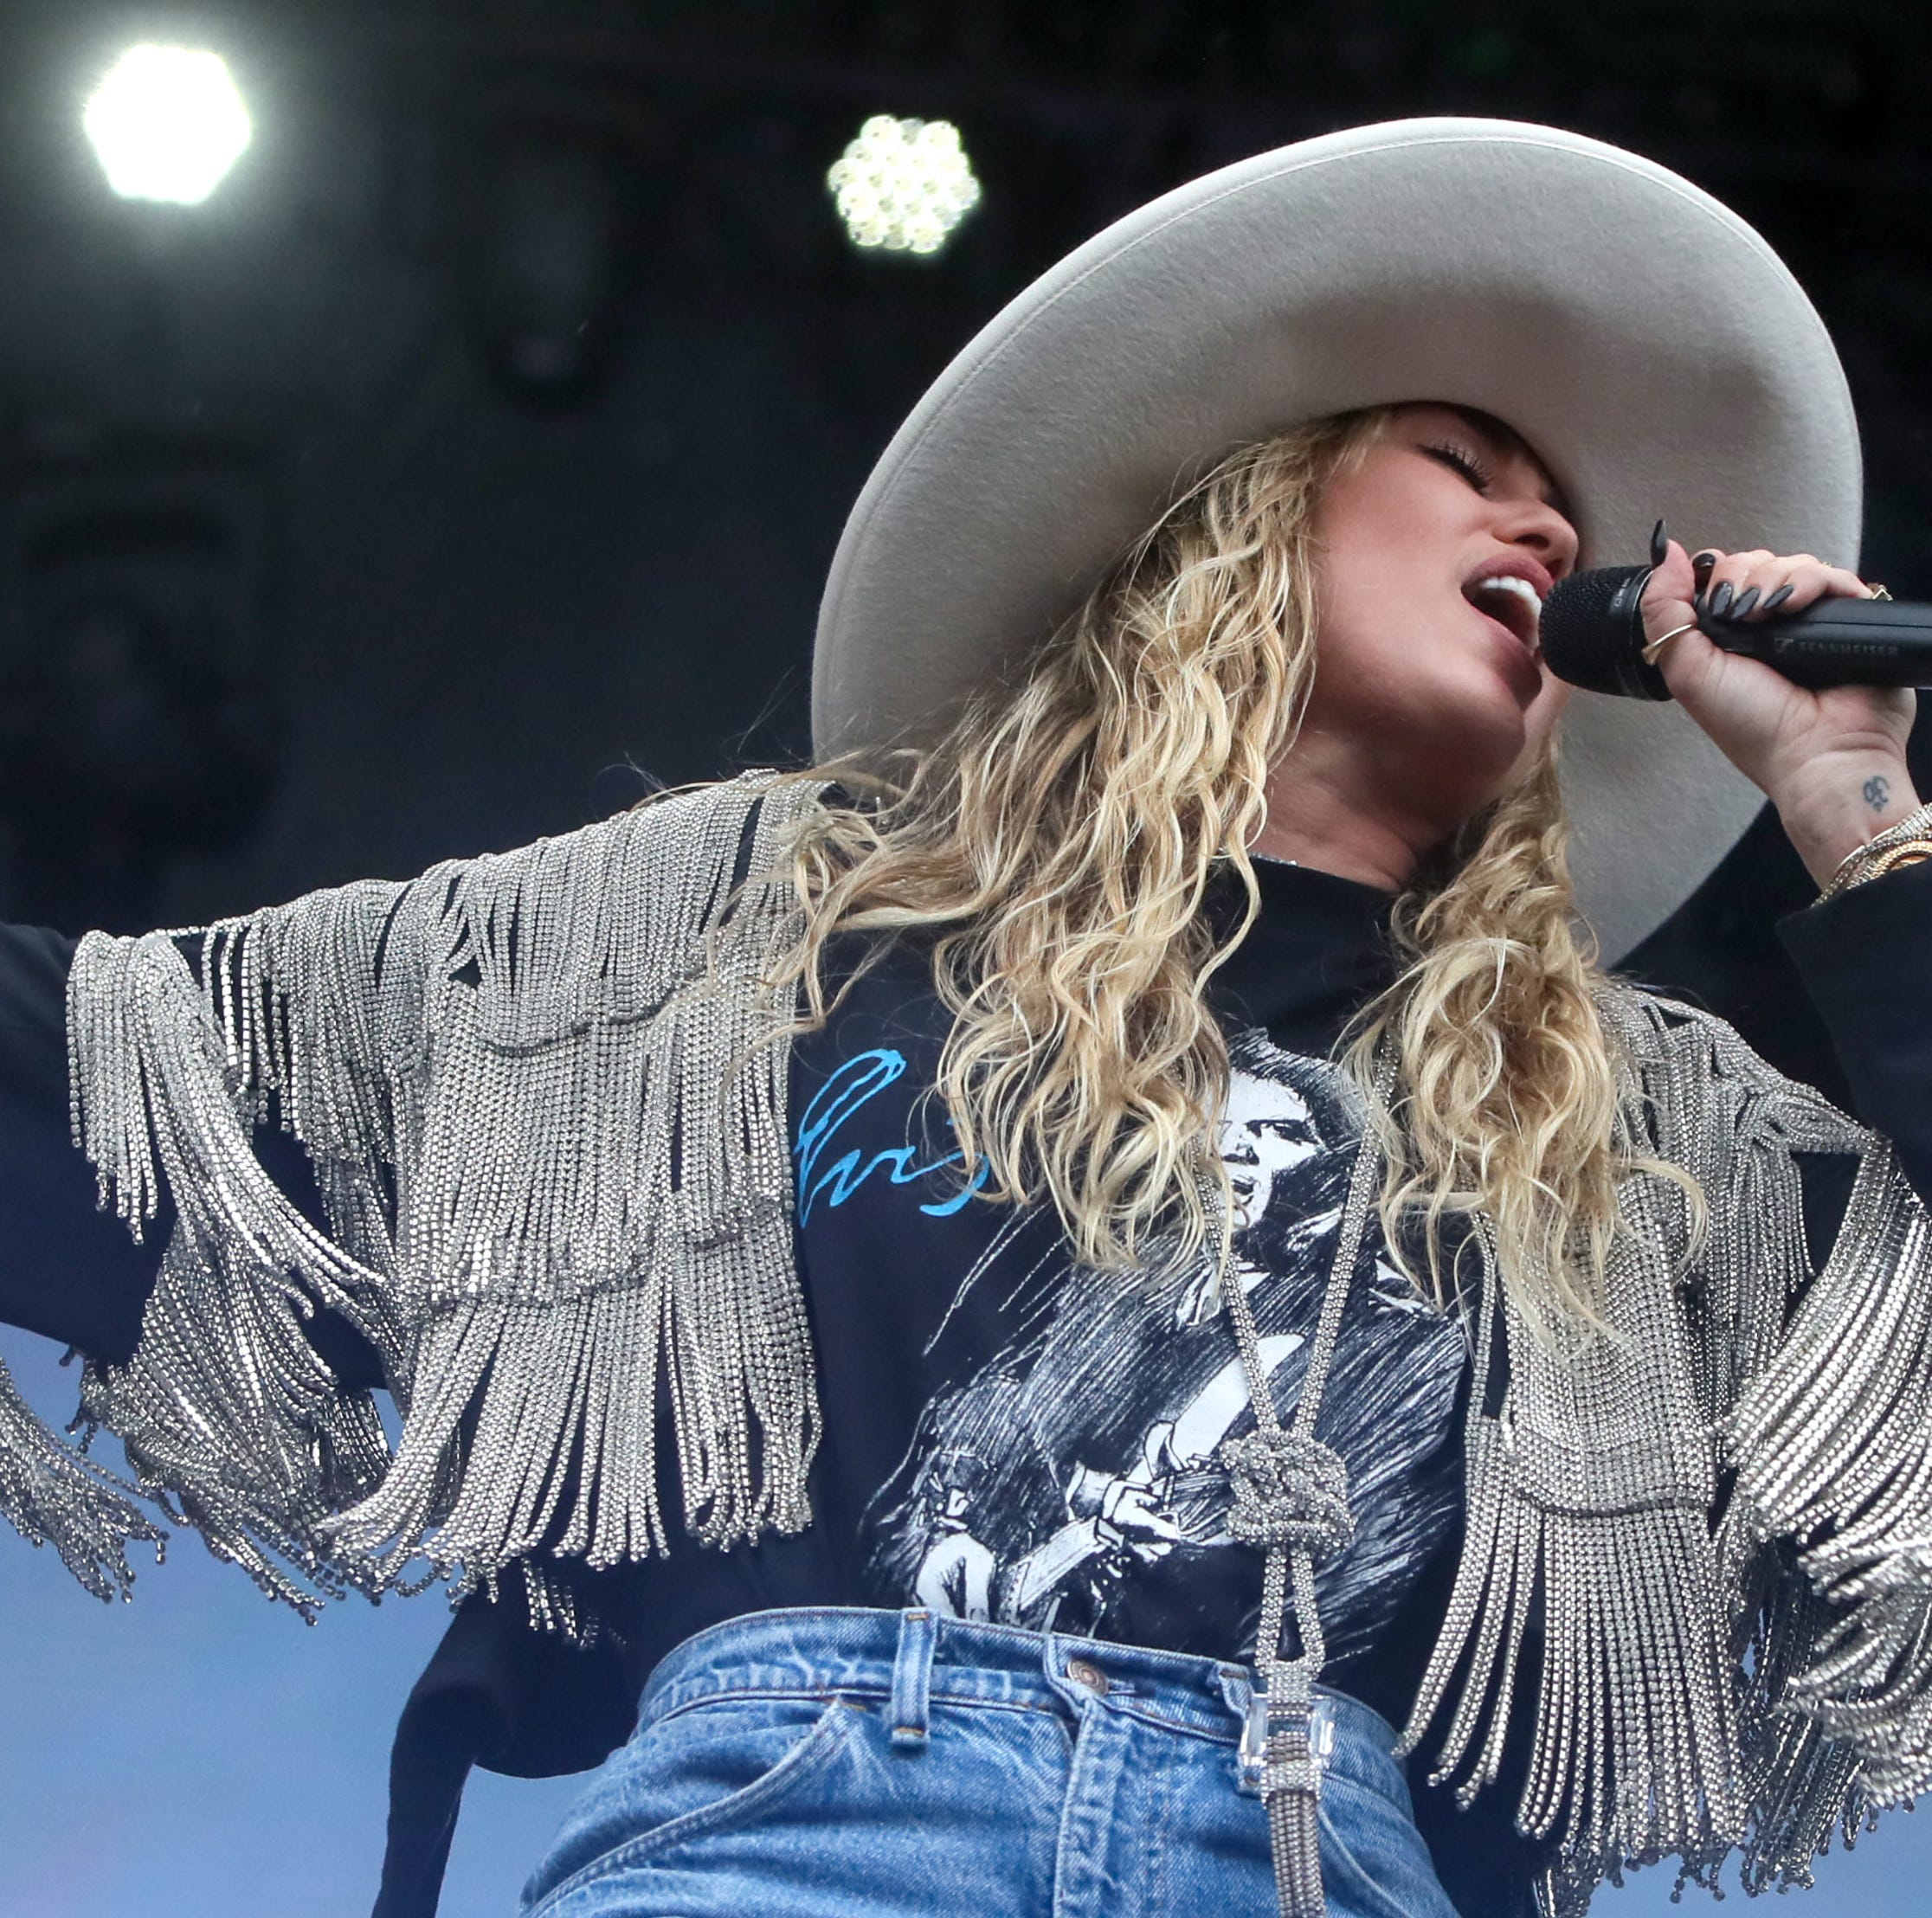 From Miley Cyrus to William Bell: 10 highlights from the Beale Street Music Festival